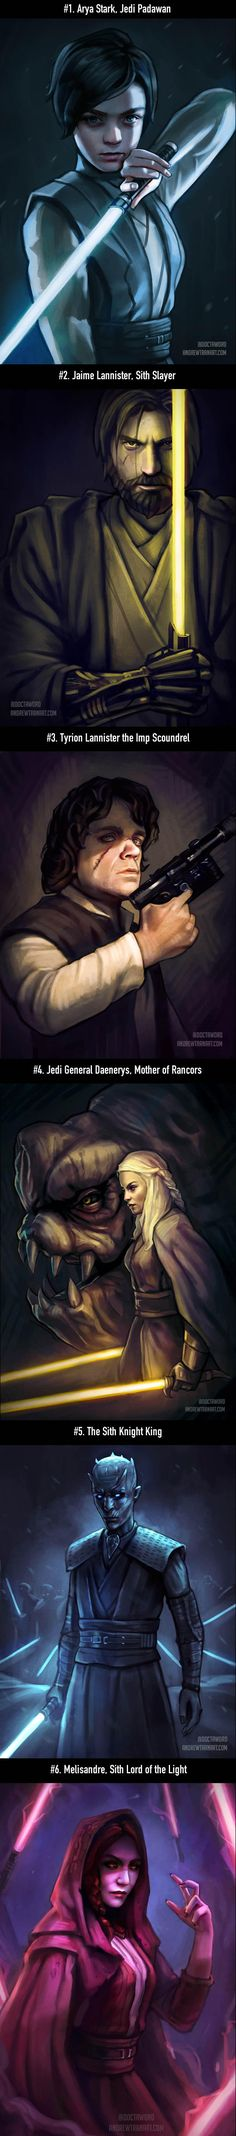 Game of Thrones Characters In Star Wars (By Andrew D Tran.)